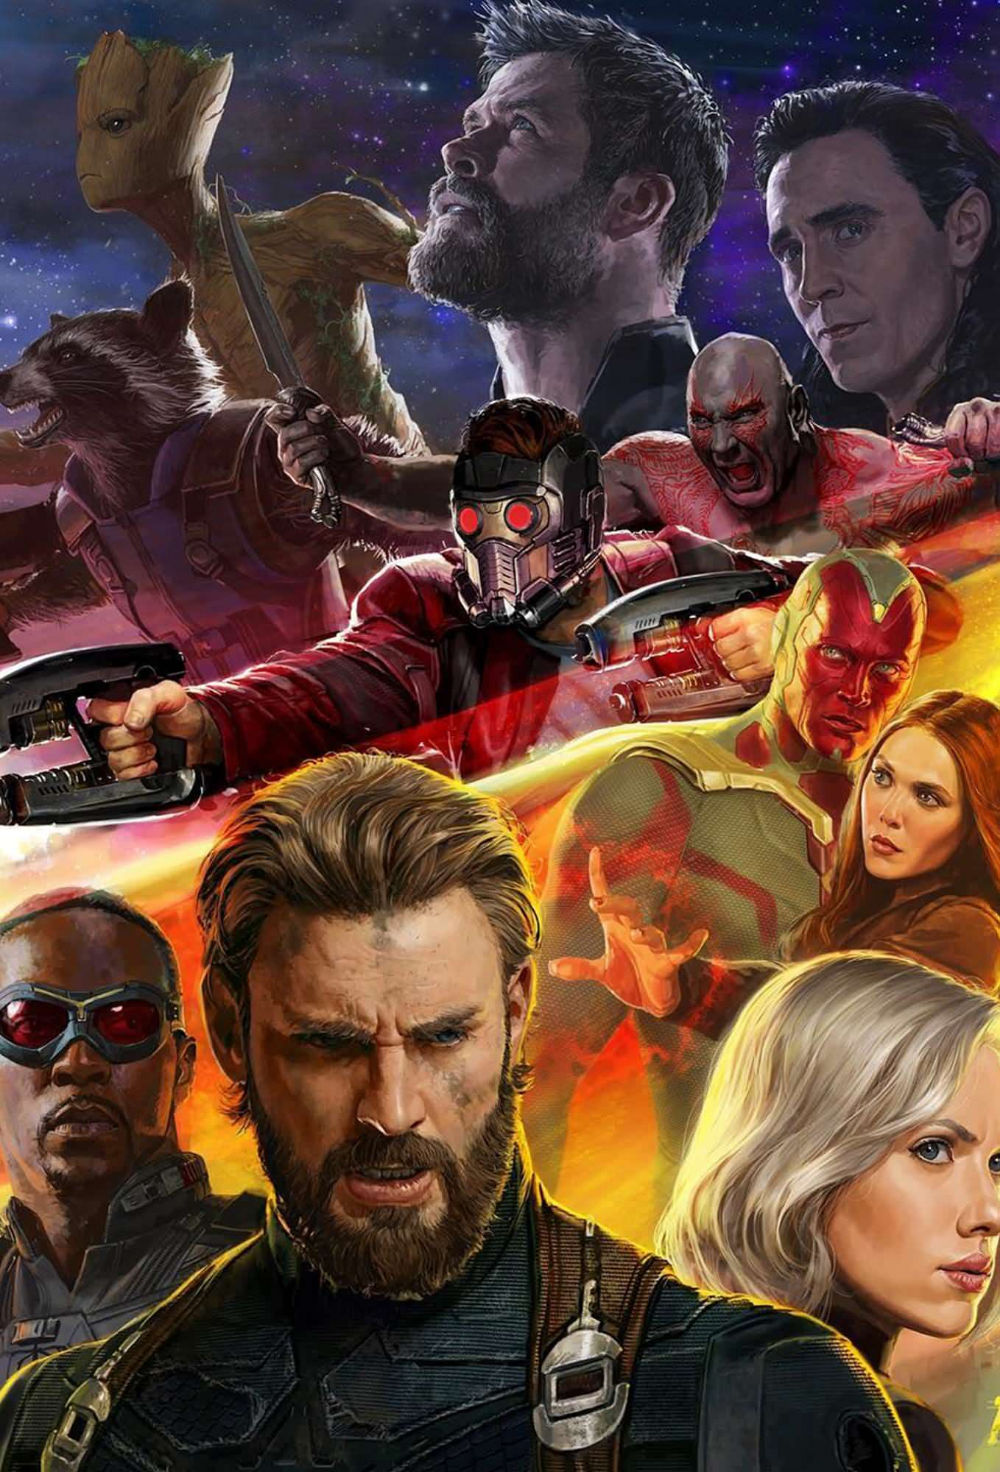 Awesome Textless Movie Poster Collection in 2020